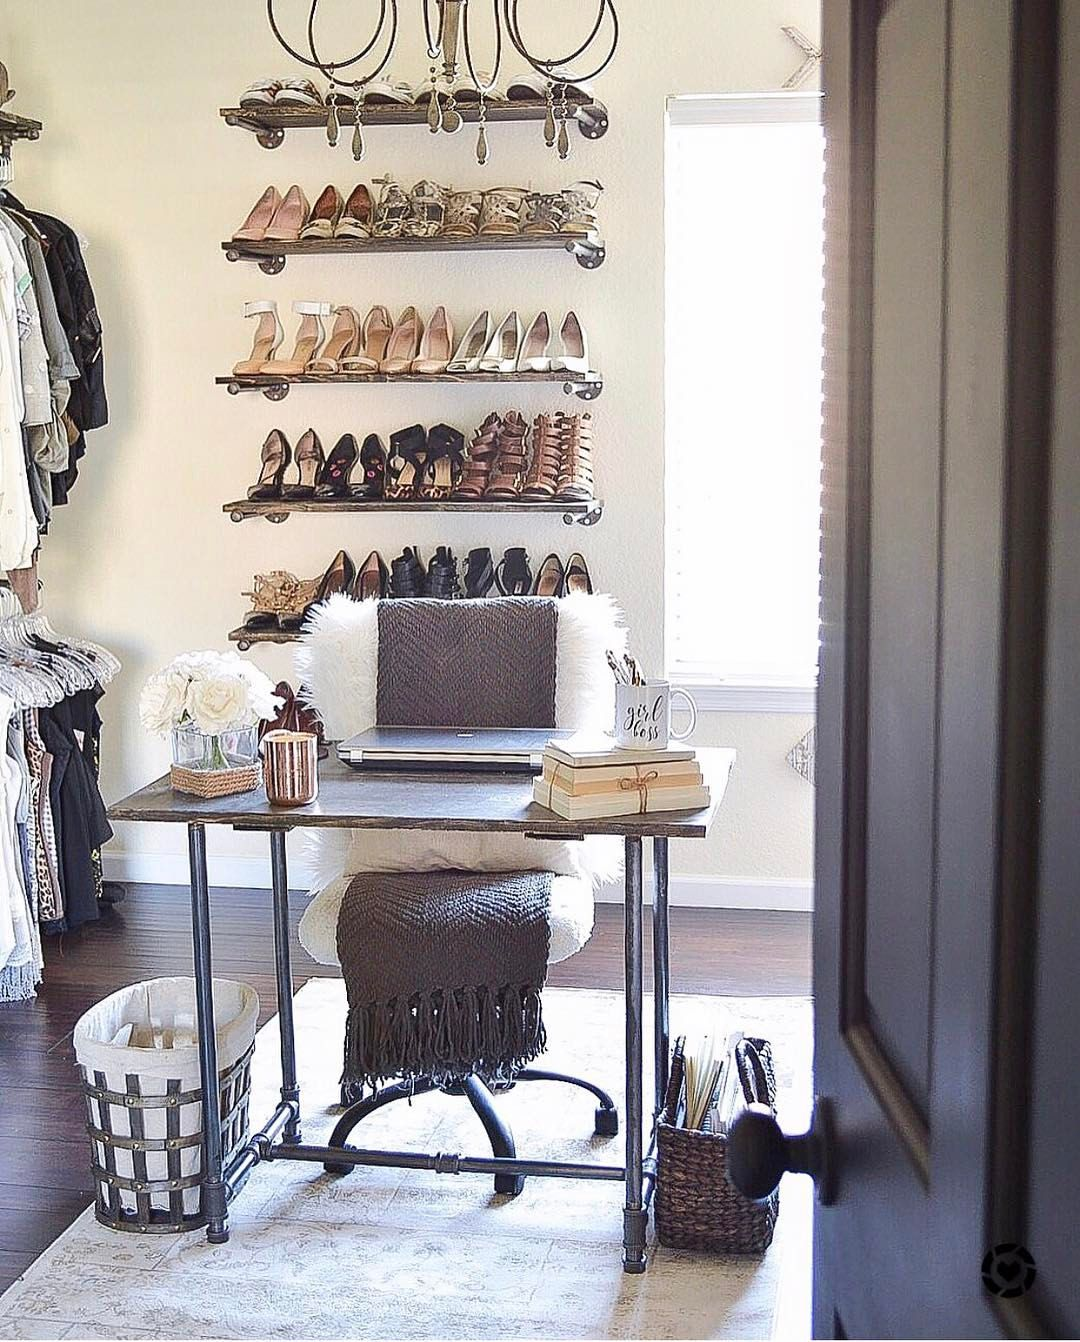 Spare Bedroom Converted To Boutique Style Dream Closet